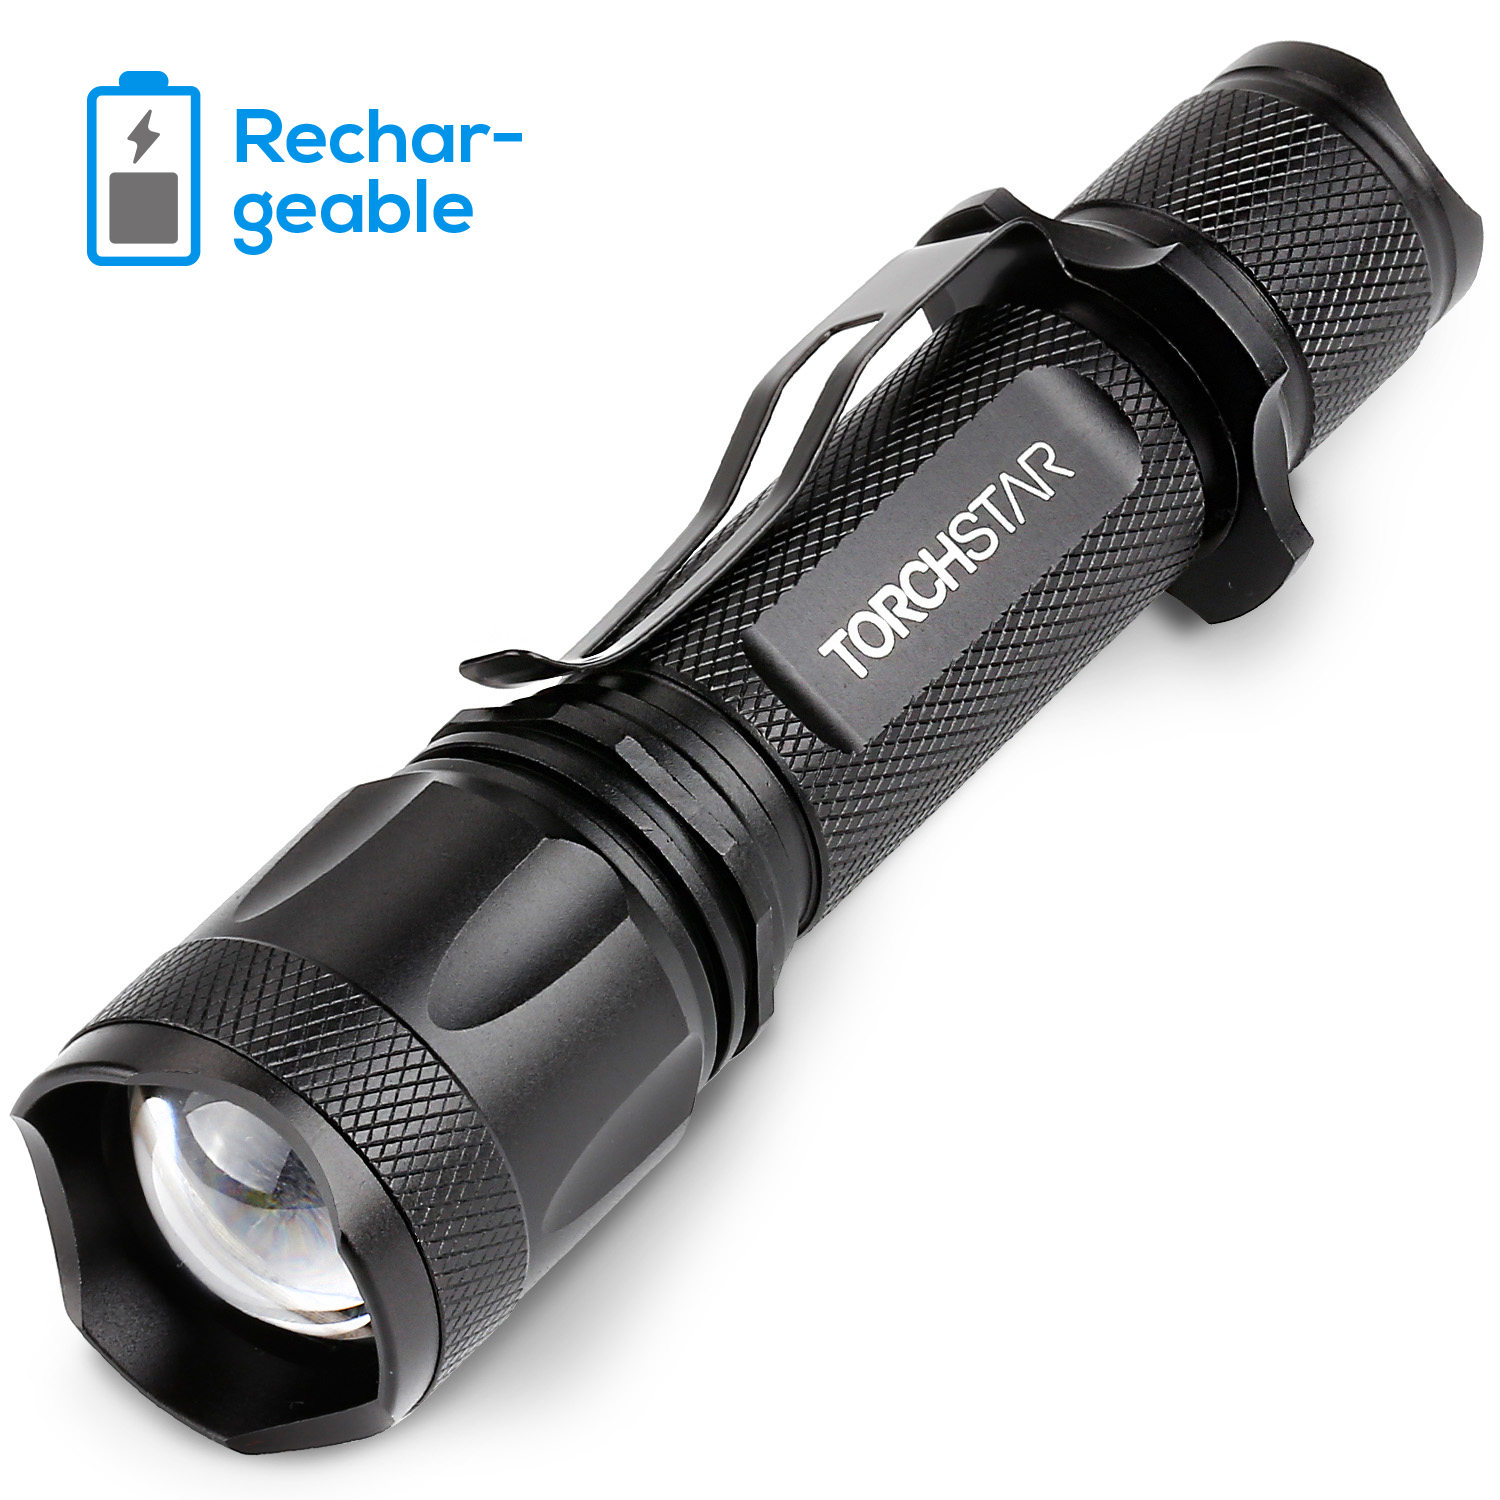 TORCHSTAR LED Tactical Flashlight, Ultra-bright Handheld Portable Flashlight, USB Rechargeable Flashlight, Skid-resistant Handgrip Flashlight, 5 Modes & Adjustable Focus Military Flashlight